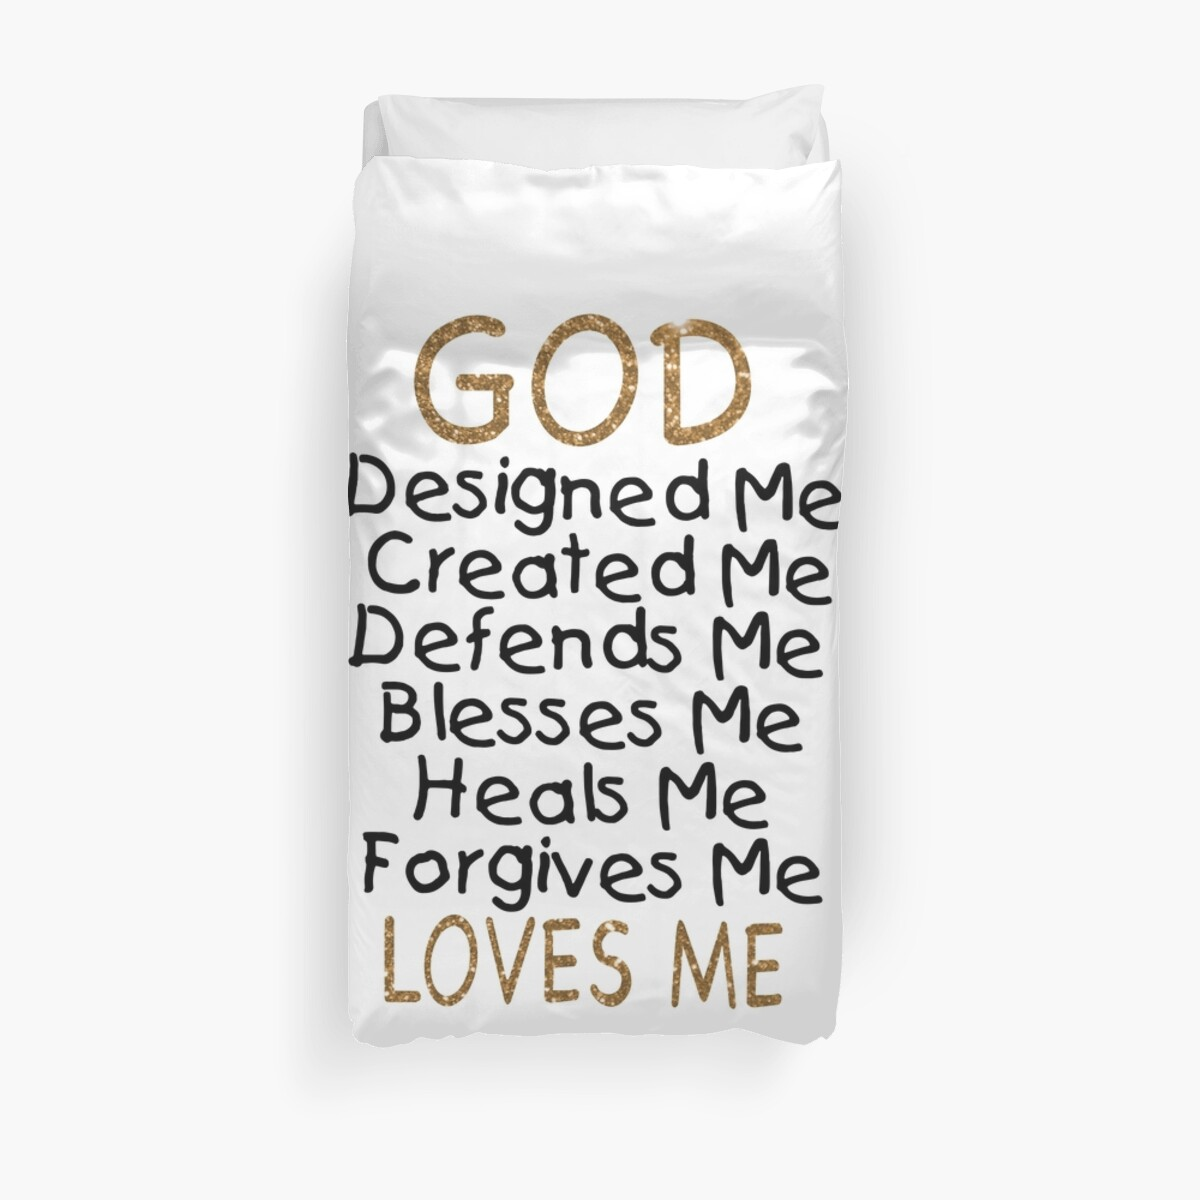 Baby Shower Gifts/Baptism Gifts/Christening Gifts - Best Cute Gift for New Baby, Him, Her, Men, Women, Son, Daughter, Kids - God Loves Me